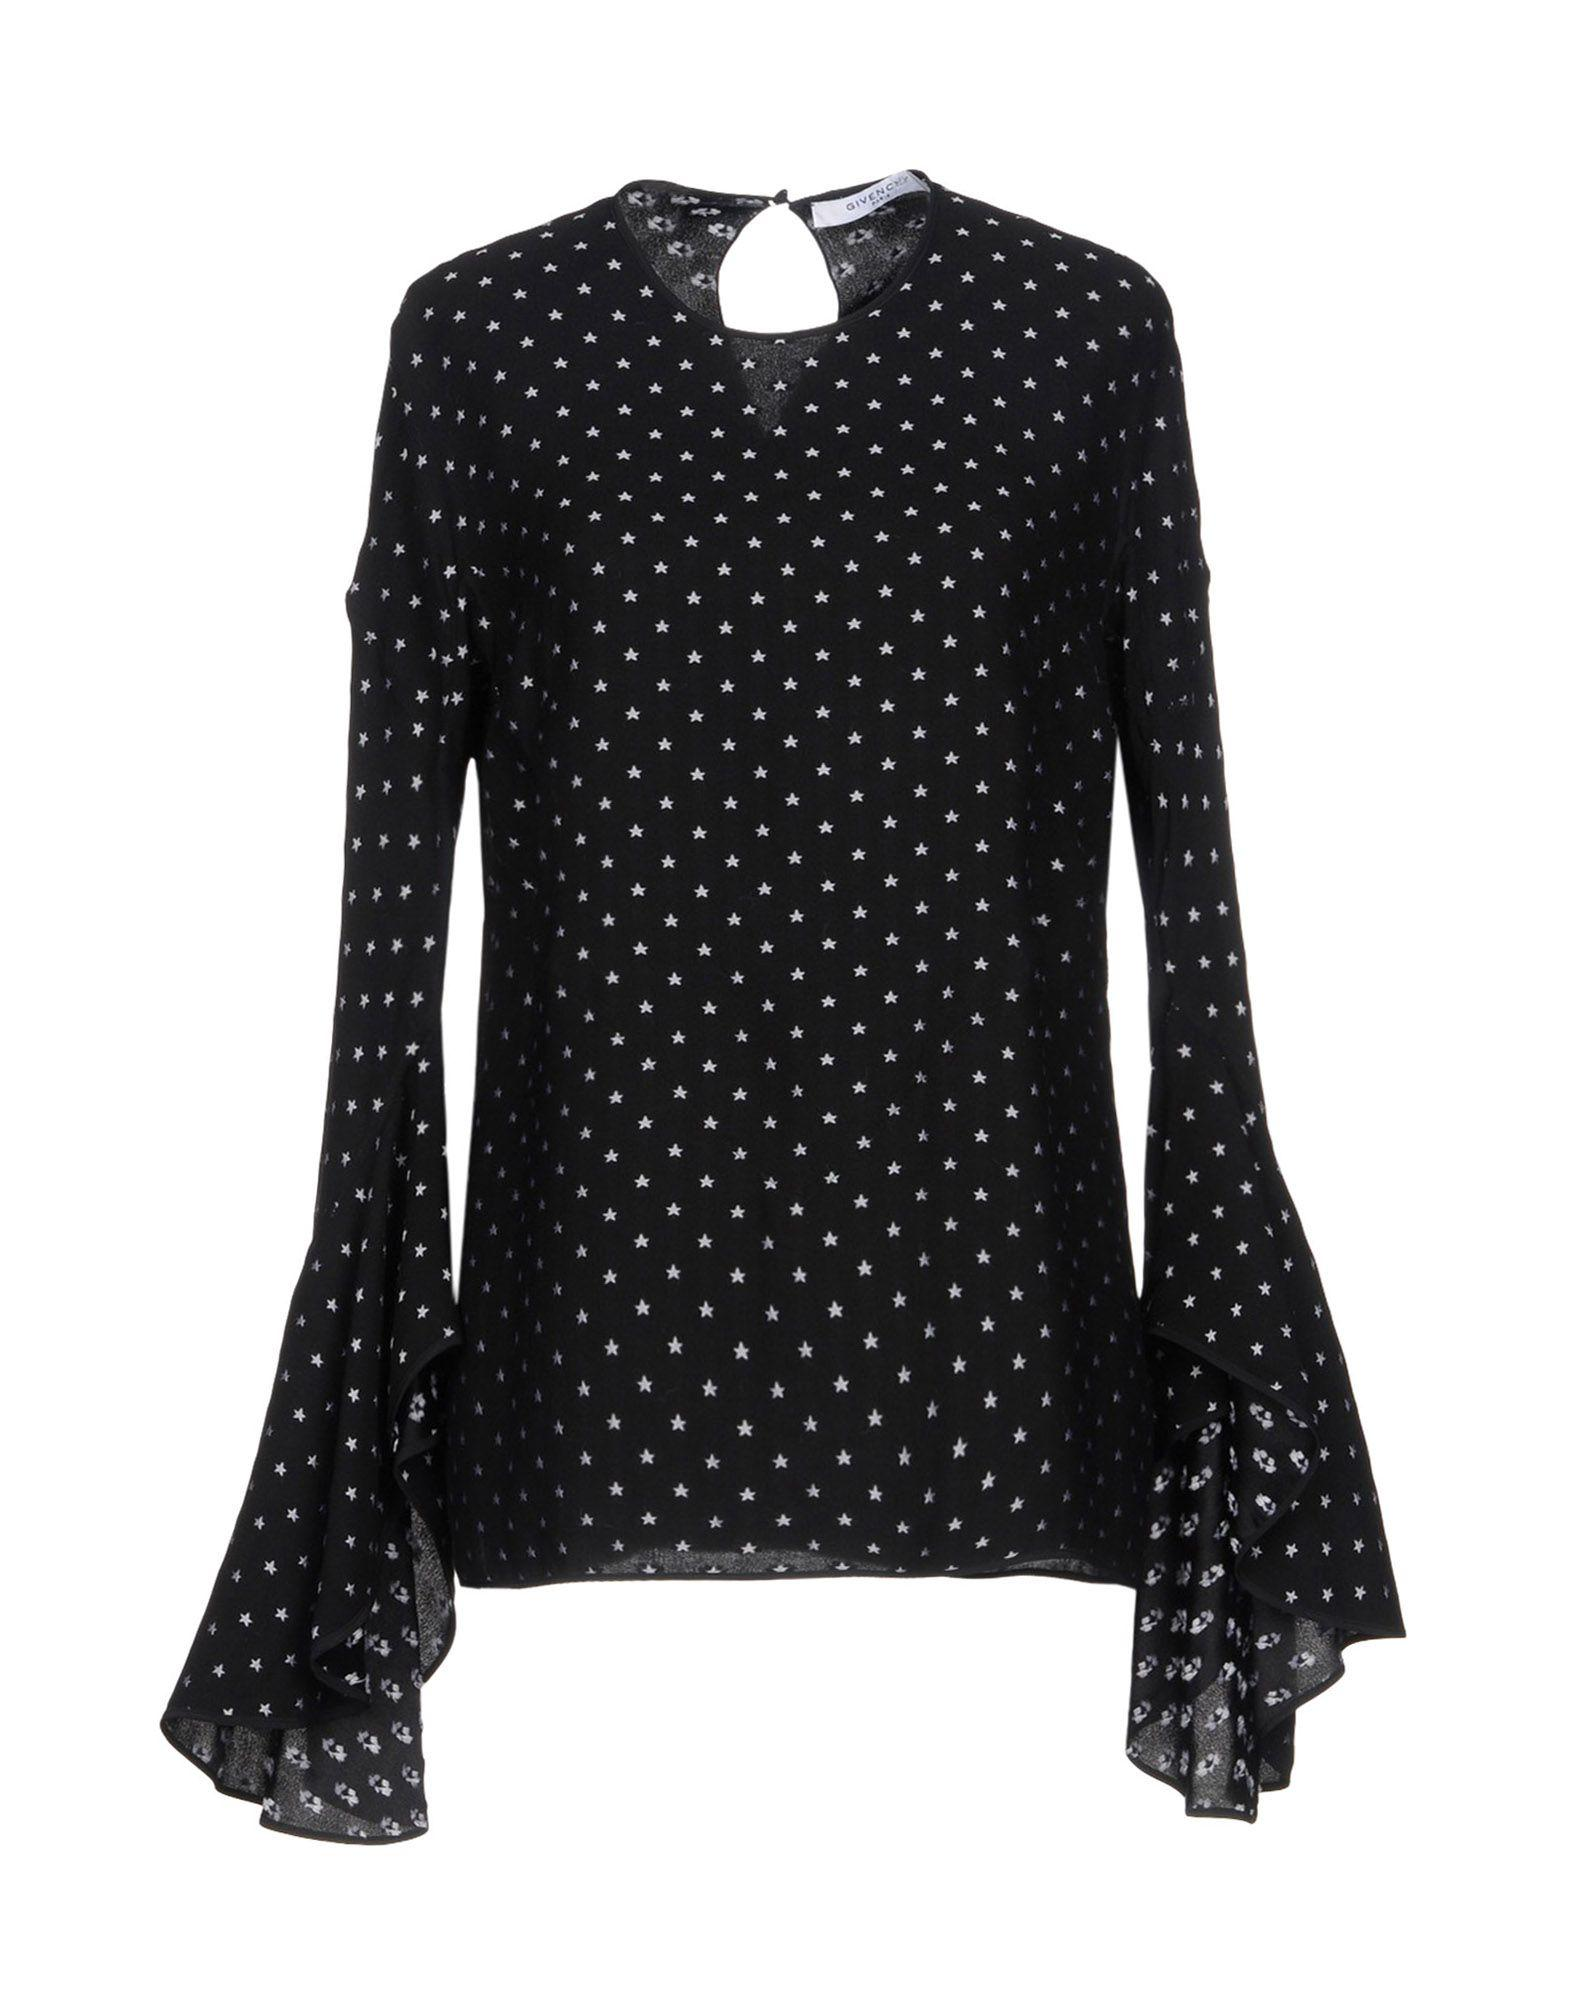 Givenchy Blouse In Black